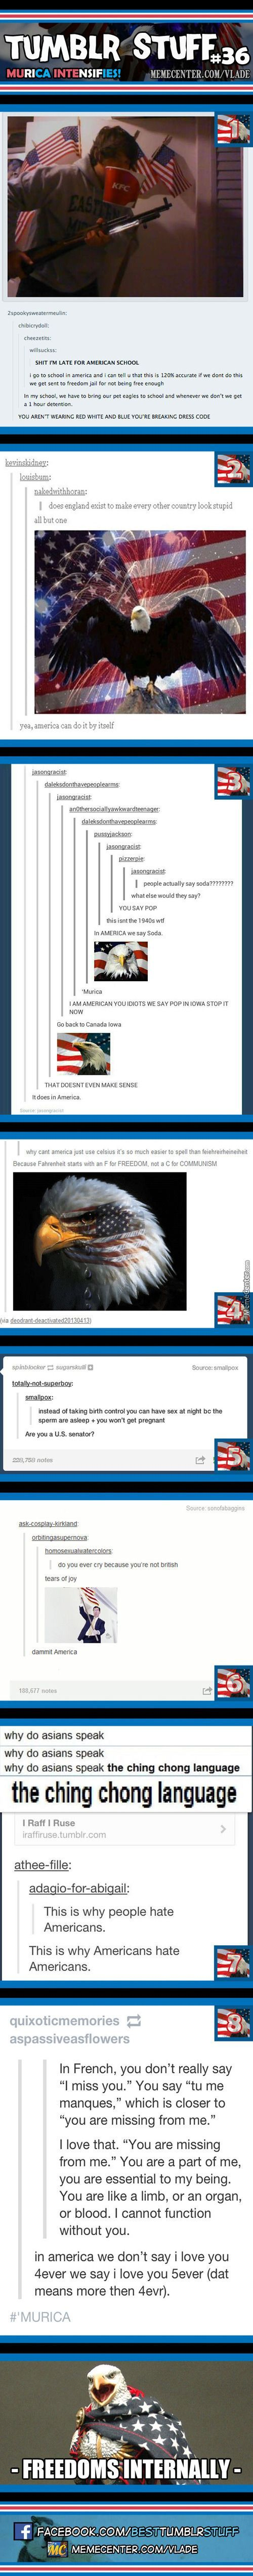 Sometimes i think im lucky to be born in america but I hate being american SOOOO bad!!...WHY WASN'T I BORN IN EUROPE!